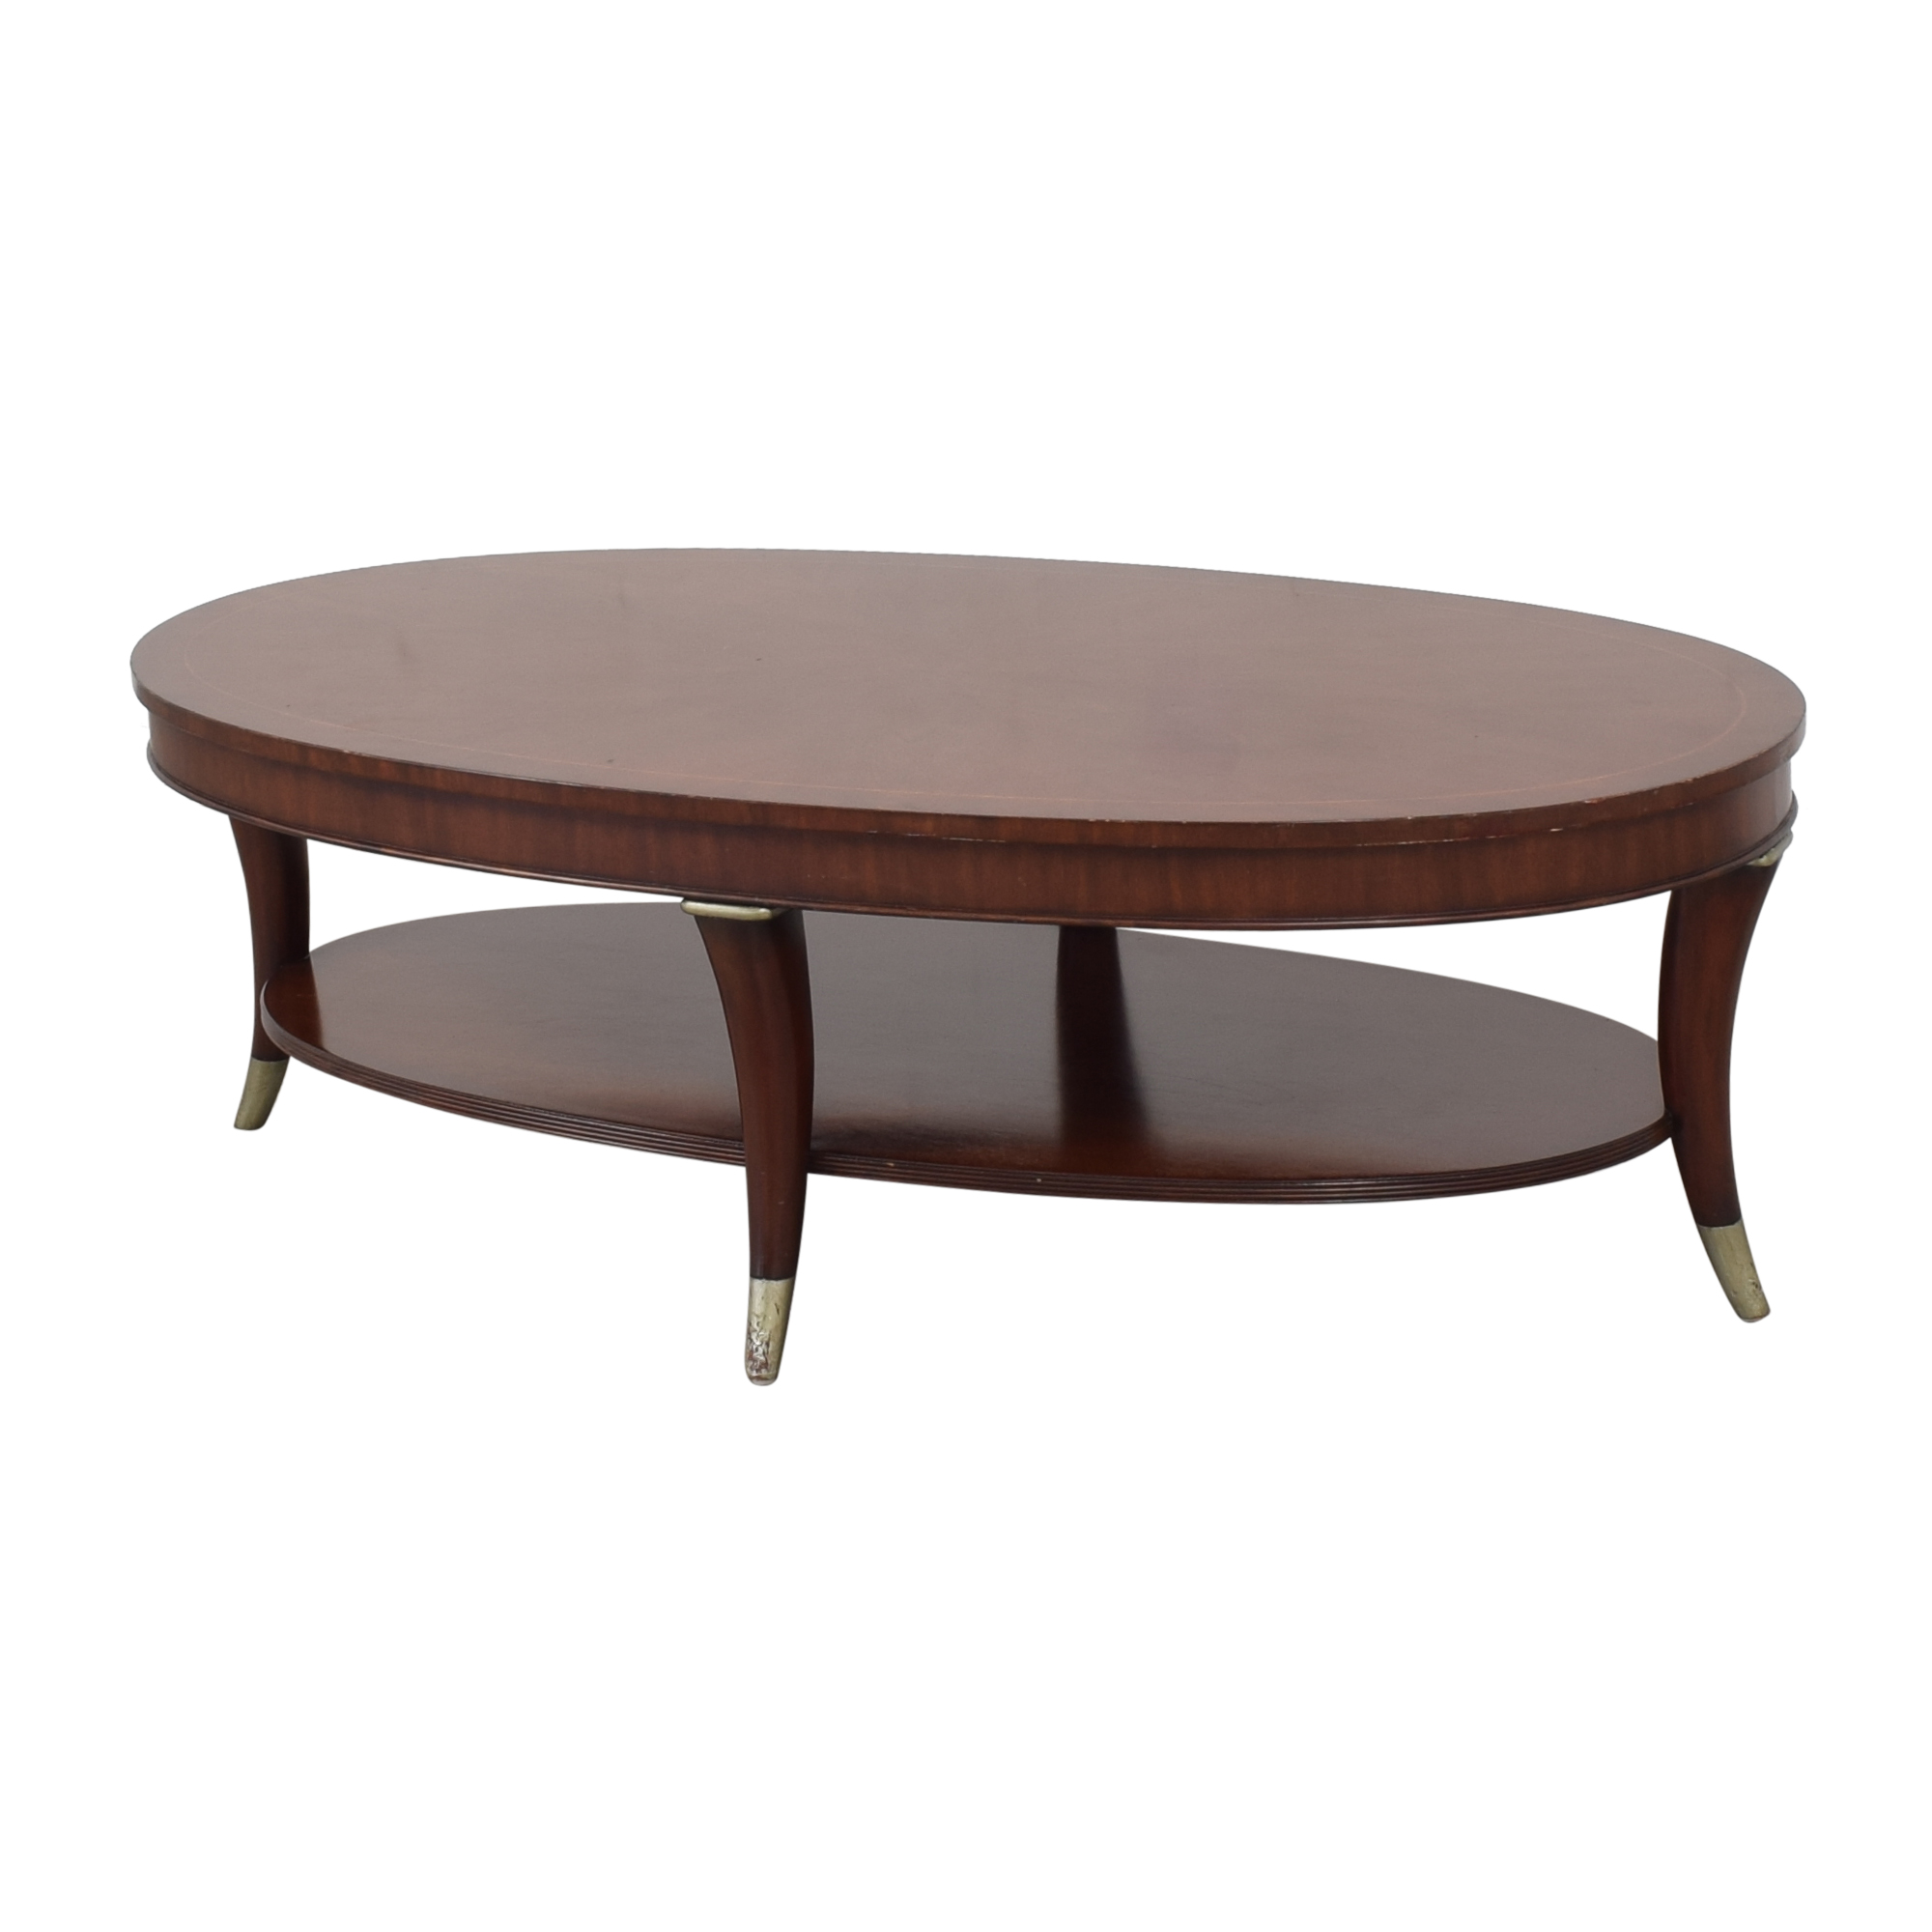 Thomasville Thomasville Oval Coffee Table ma